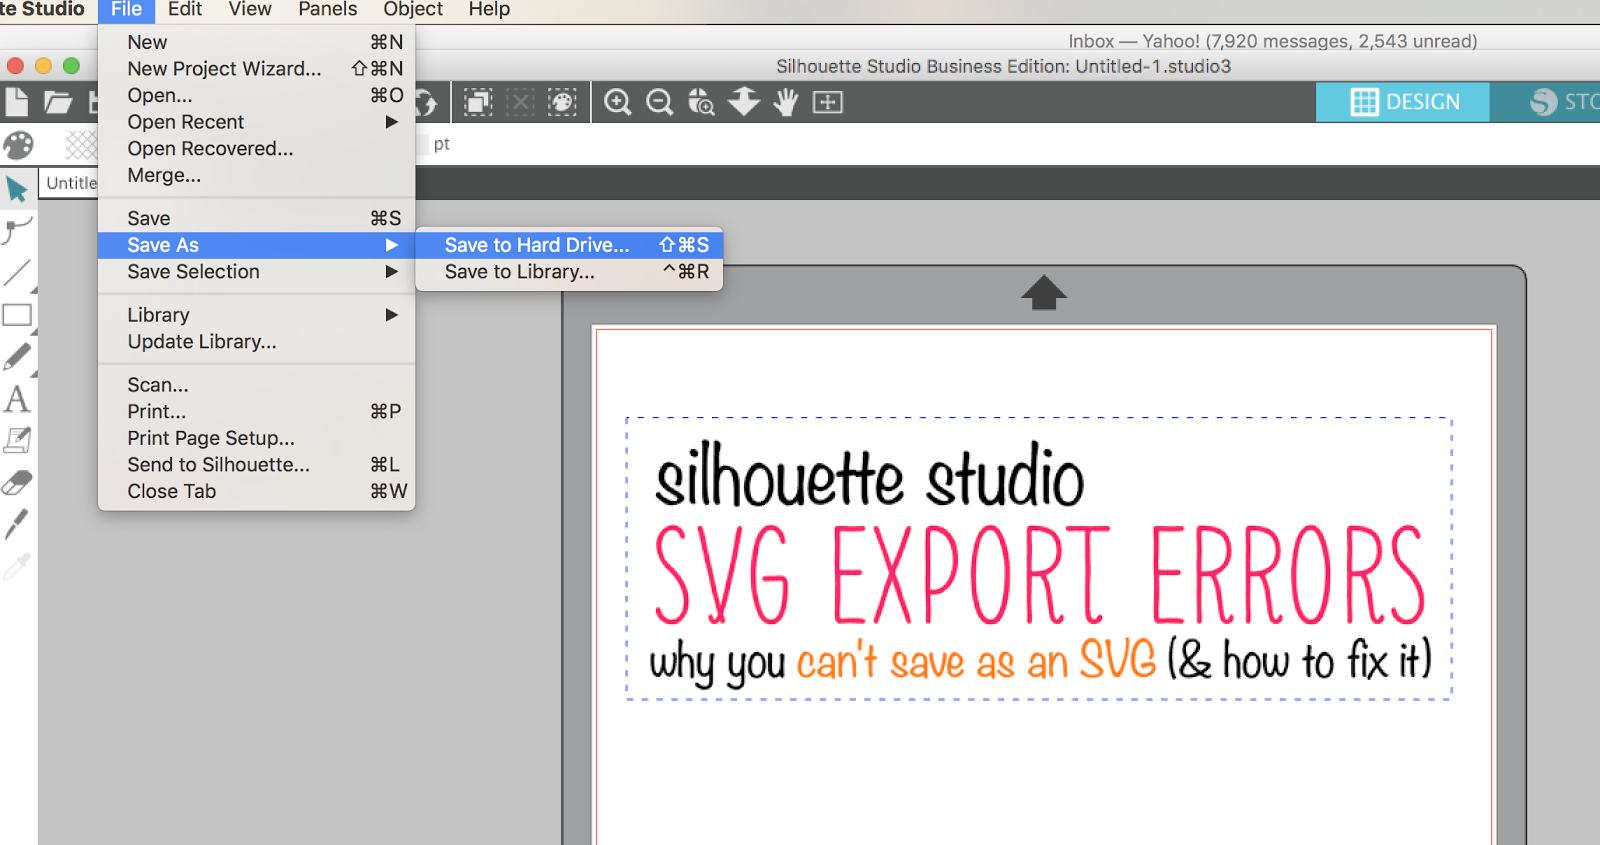 Silhouette Studio Save As Svg Export Errors And How To Fix Them Silhouette School